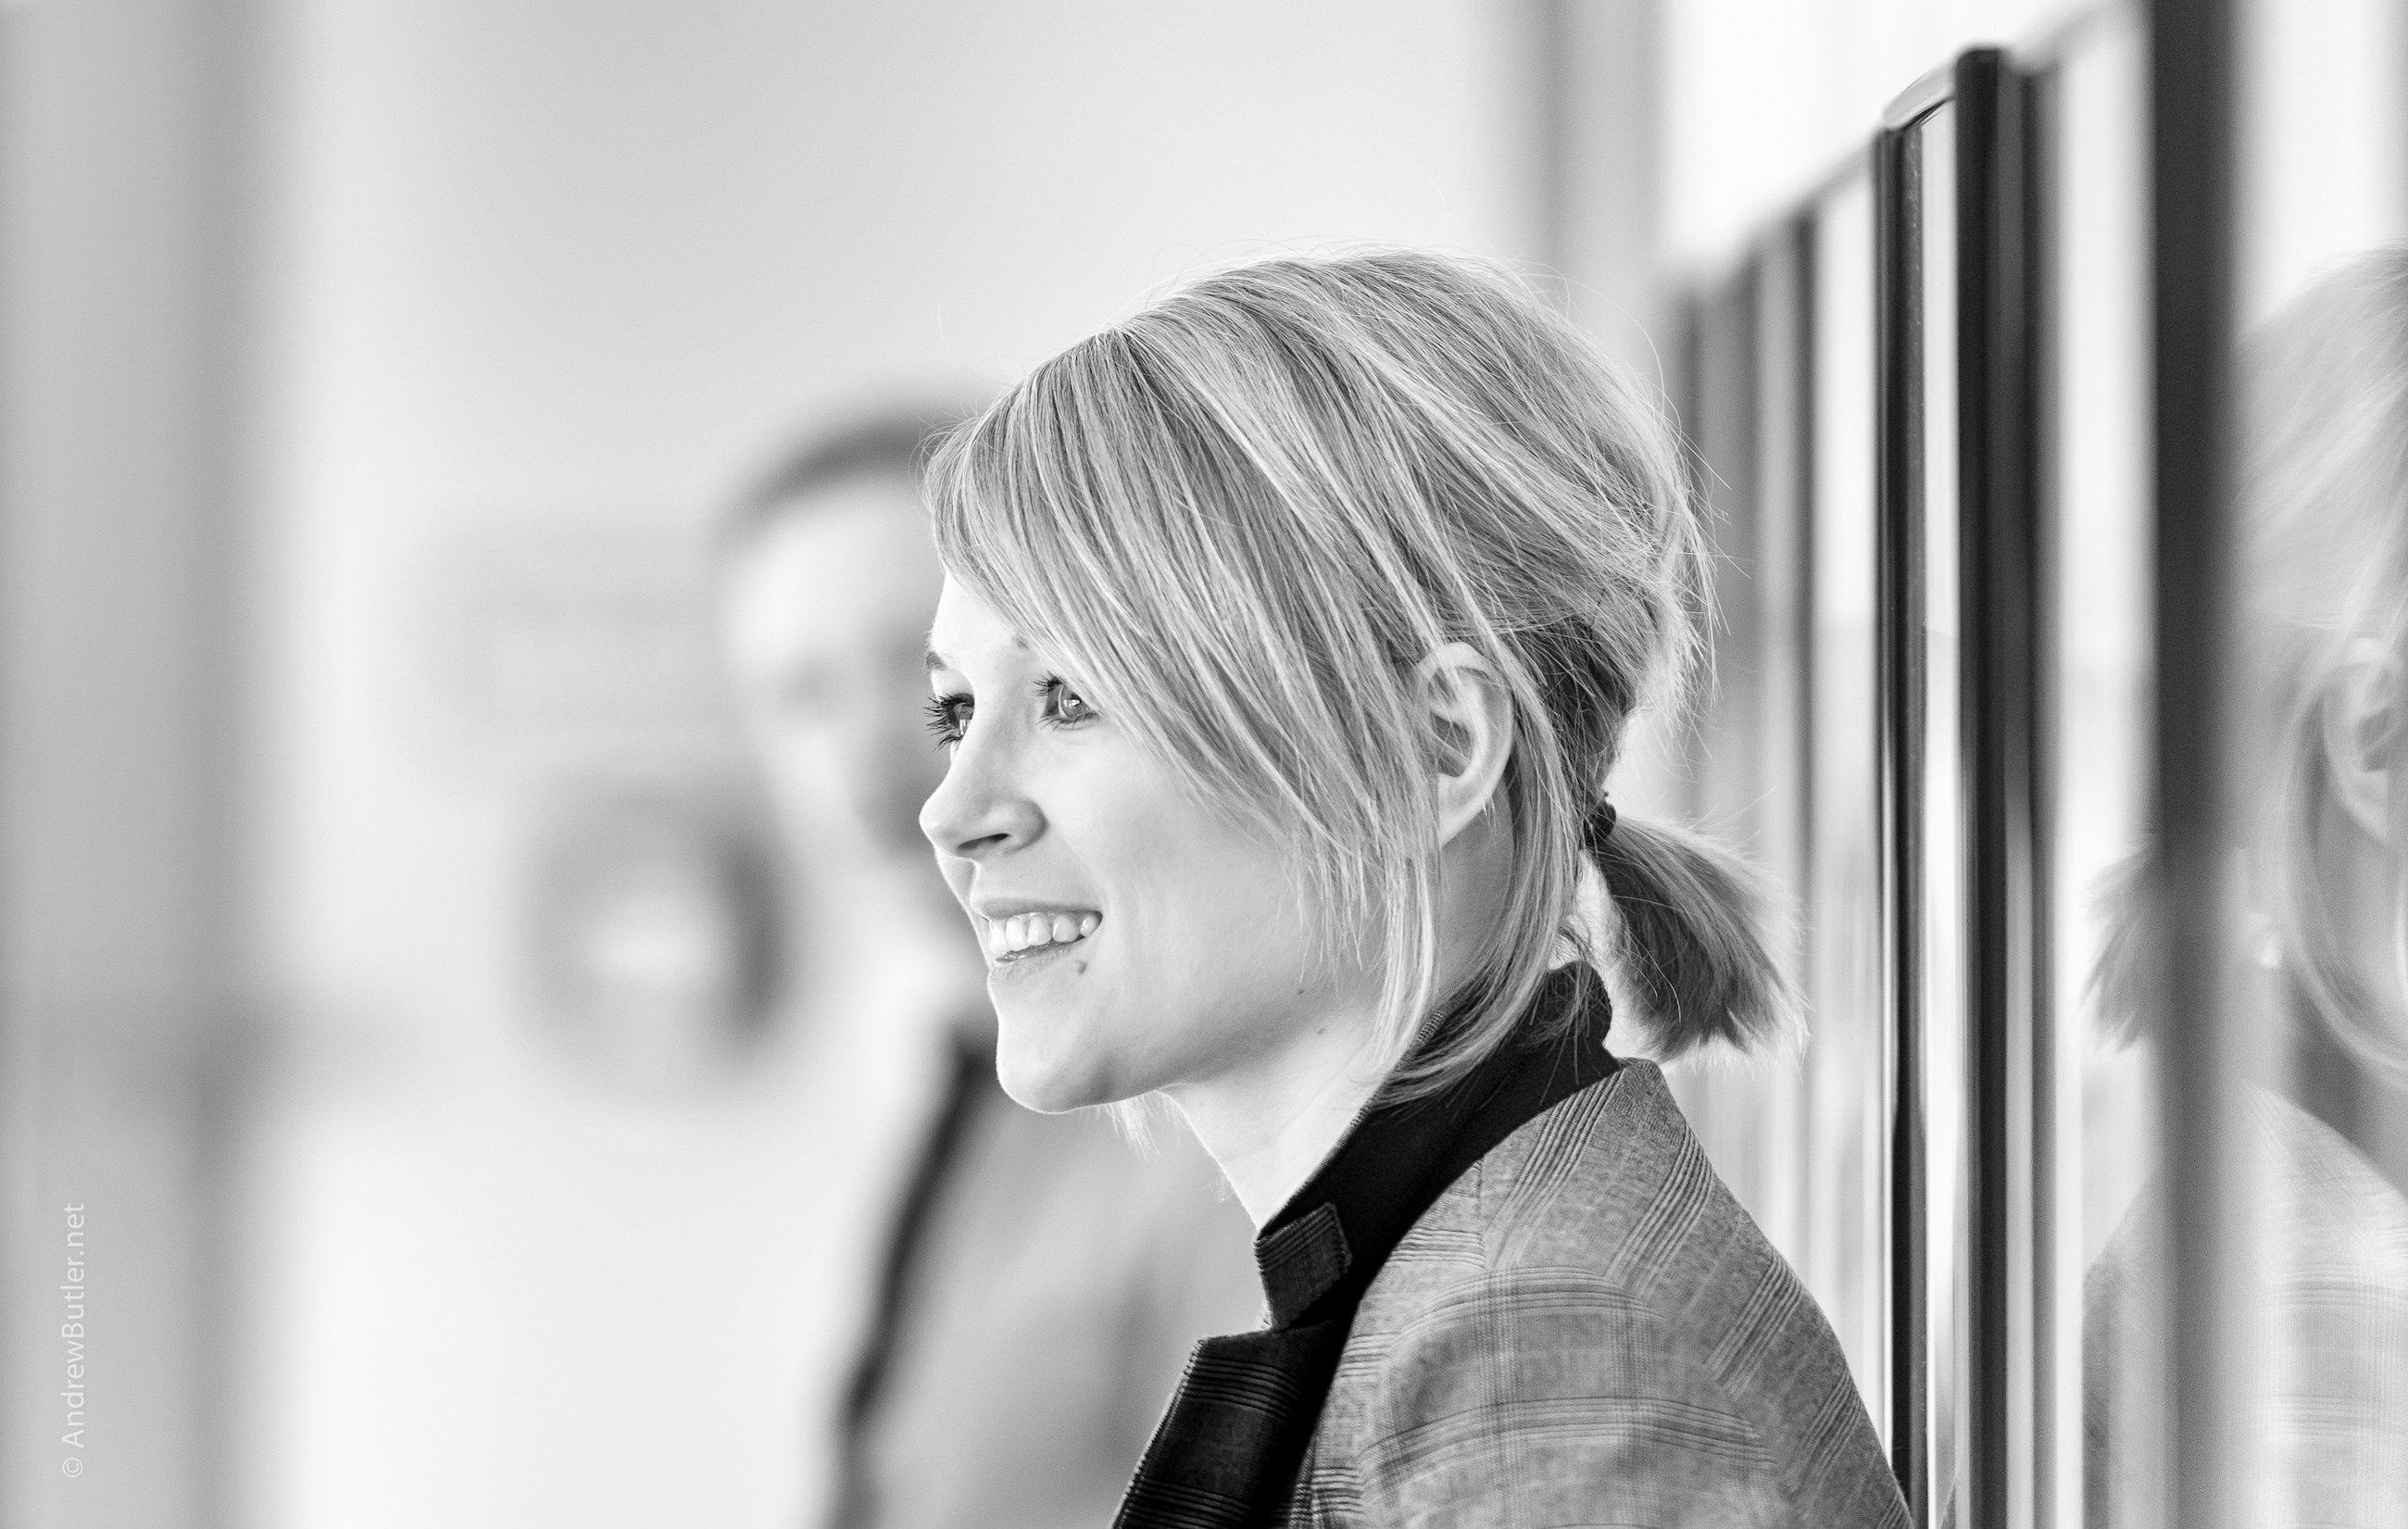 Female Black and White Headshot Head and Body Portrait Photography Exeter Devon